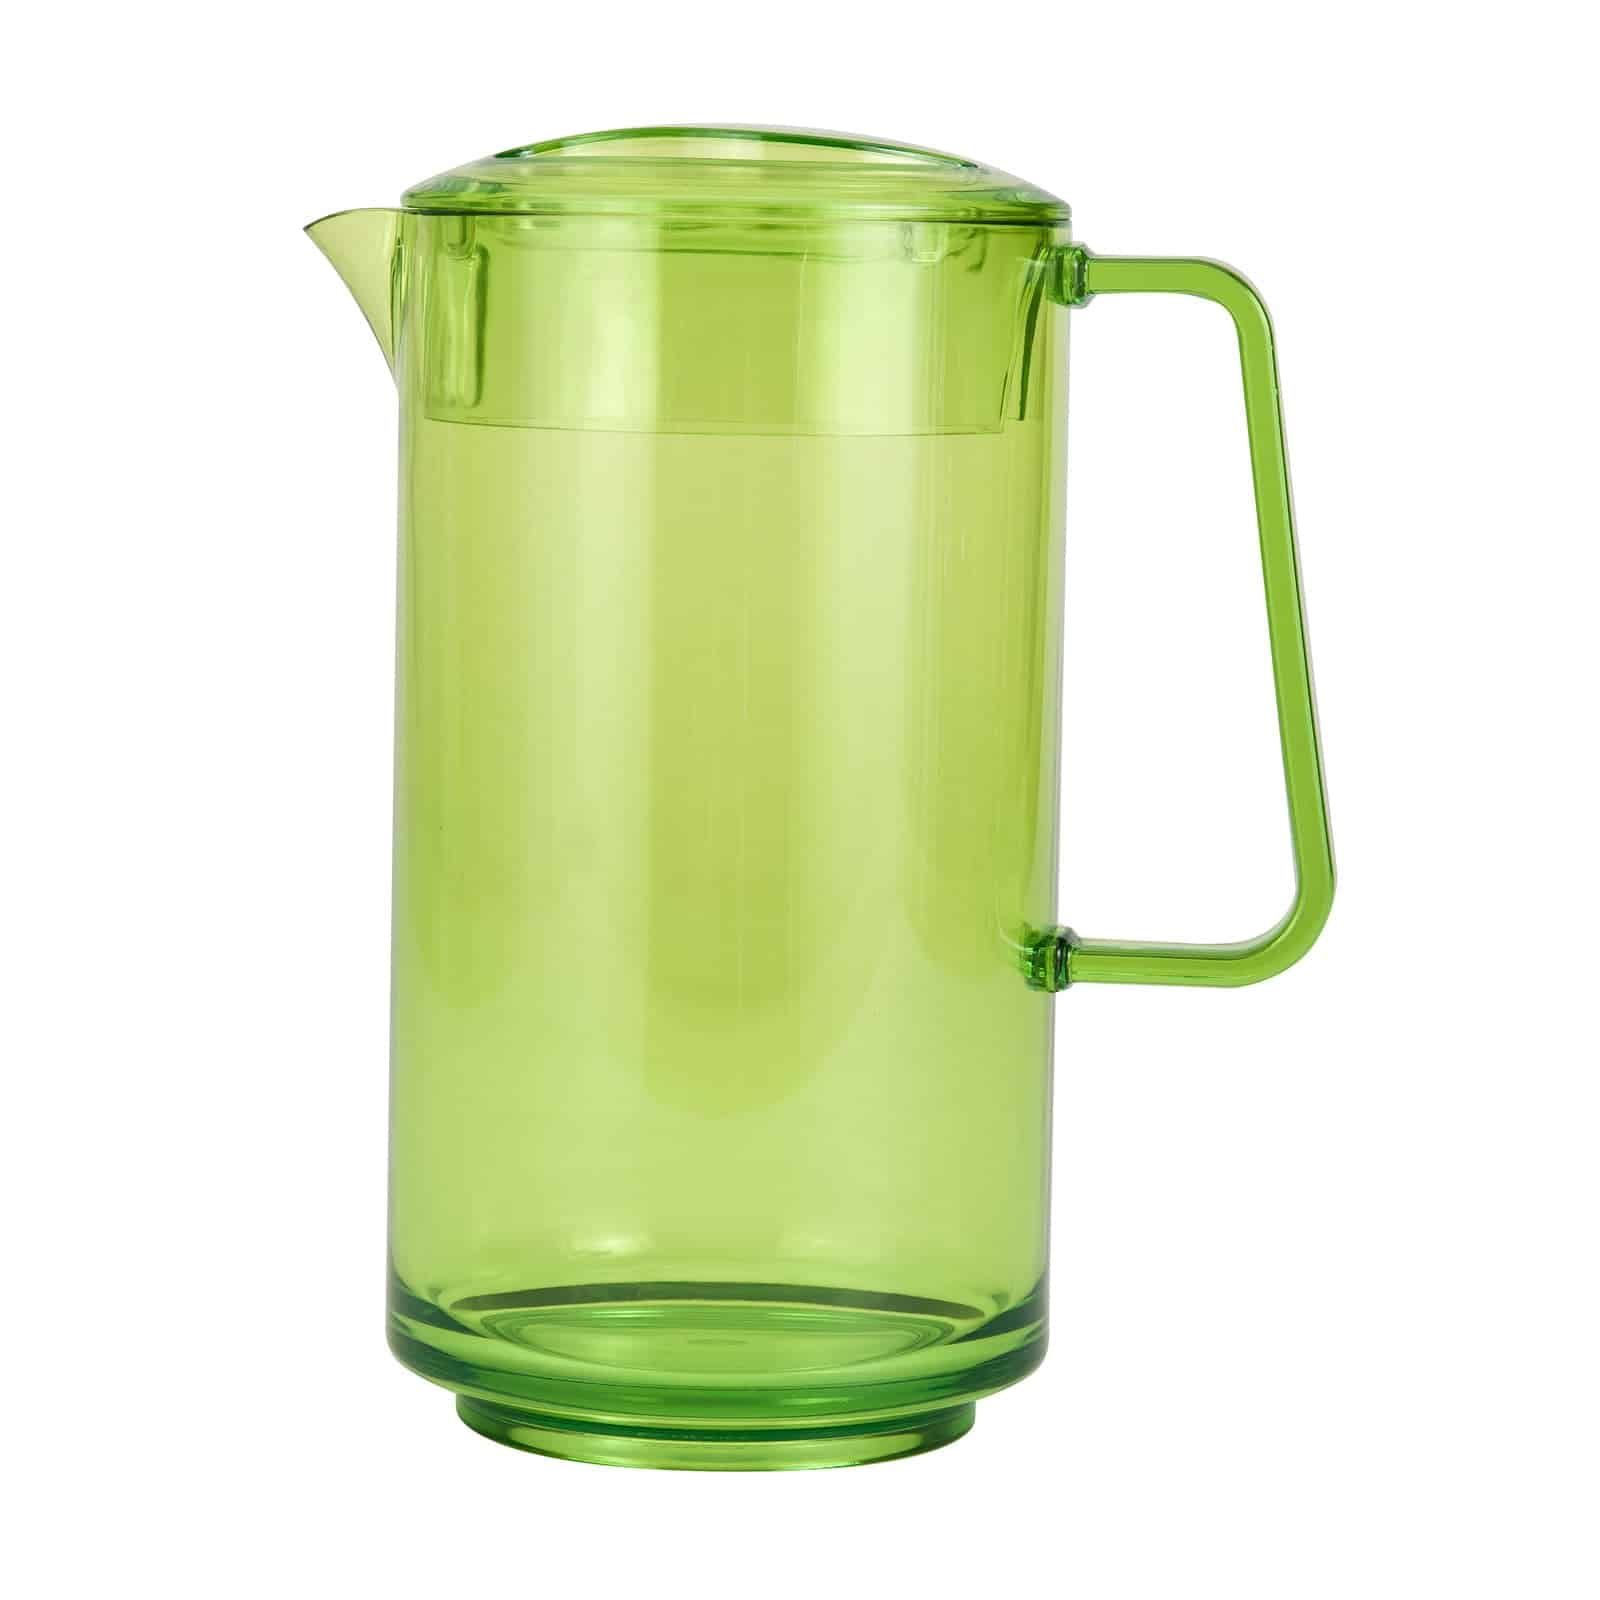 Plastic Pitcher All Seasons Rent All